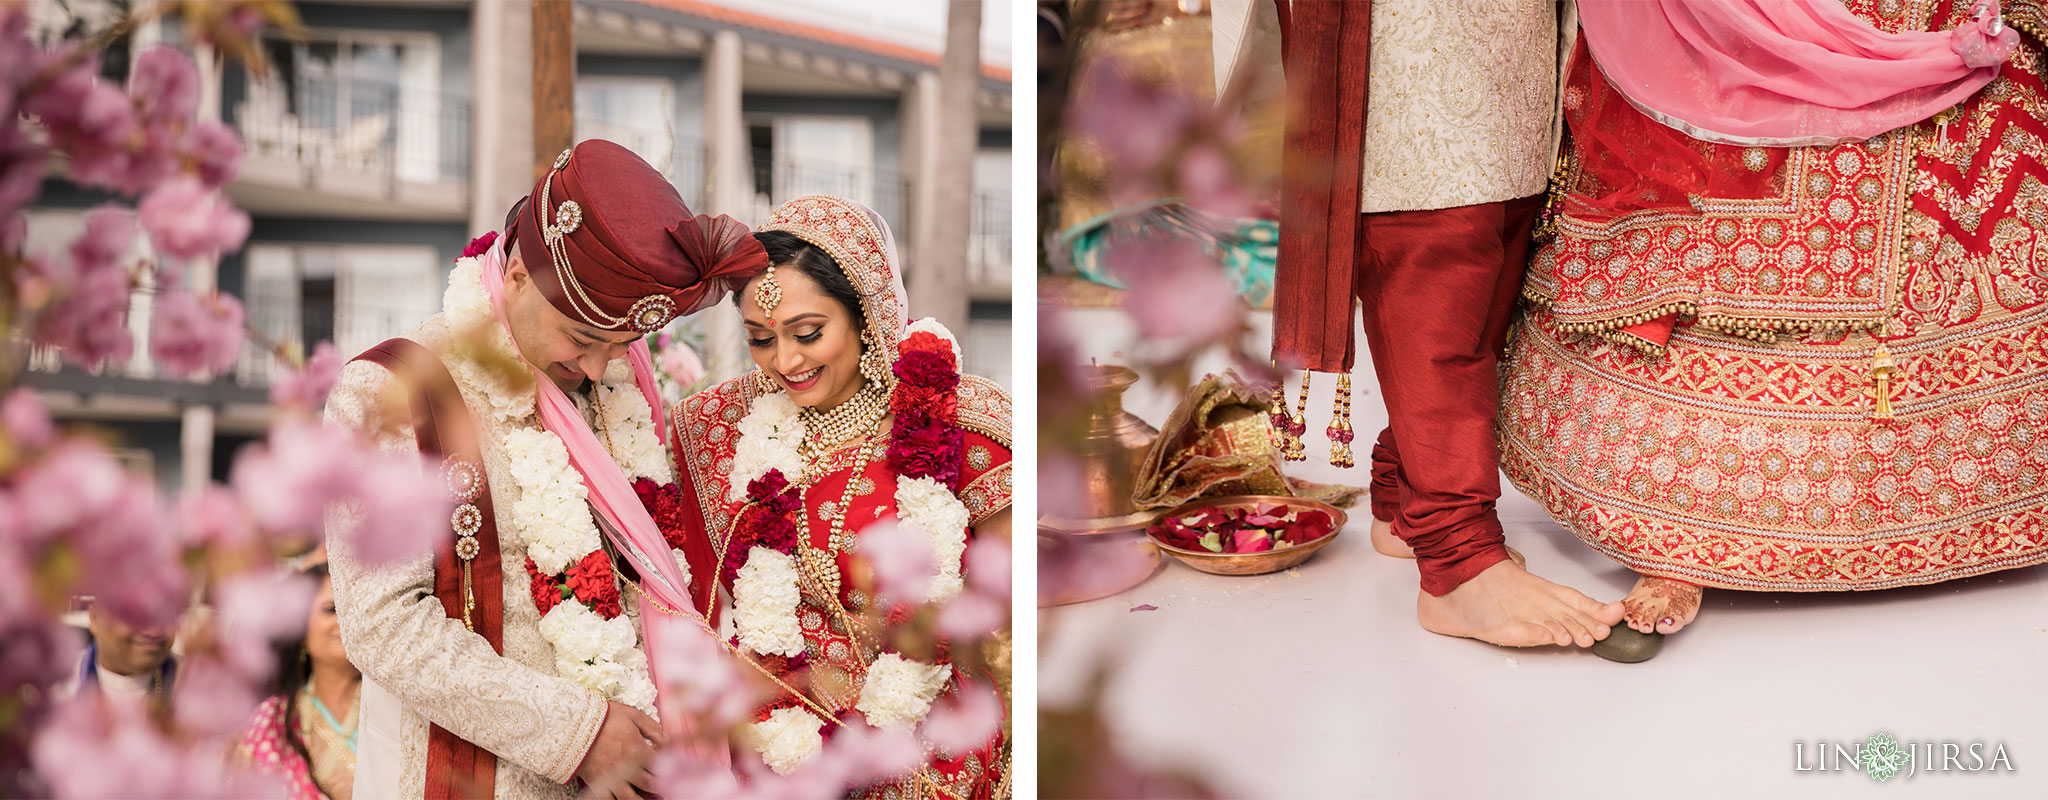 26 loews coronado bay resort indian wedding ceremony photography